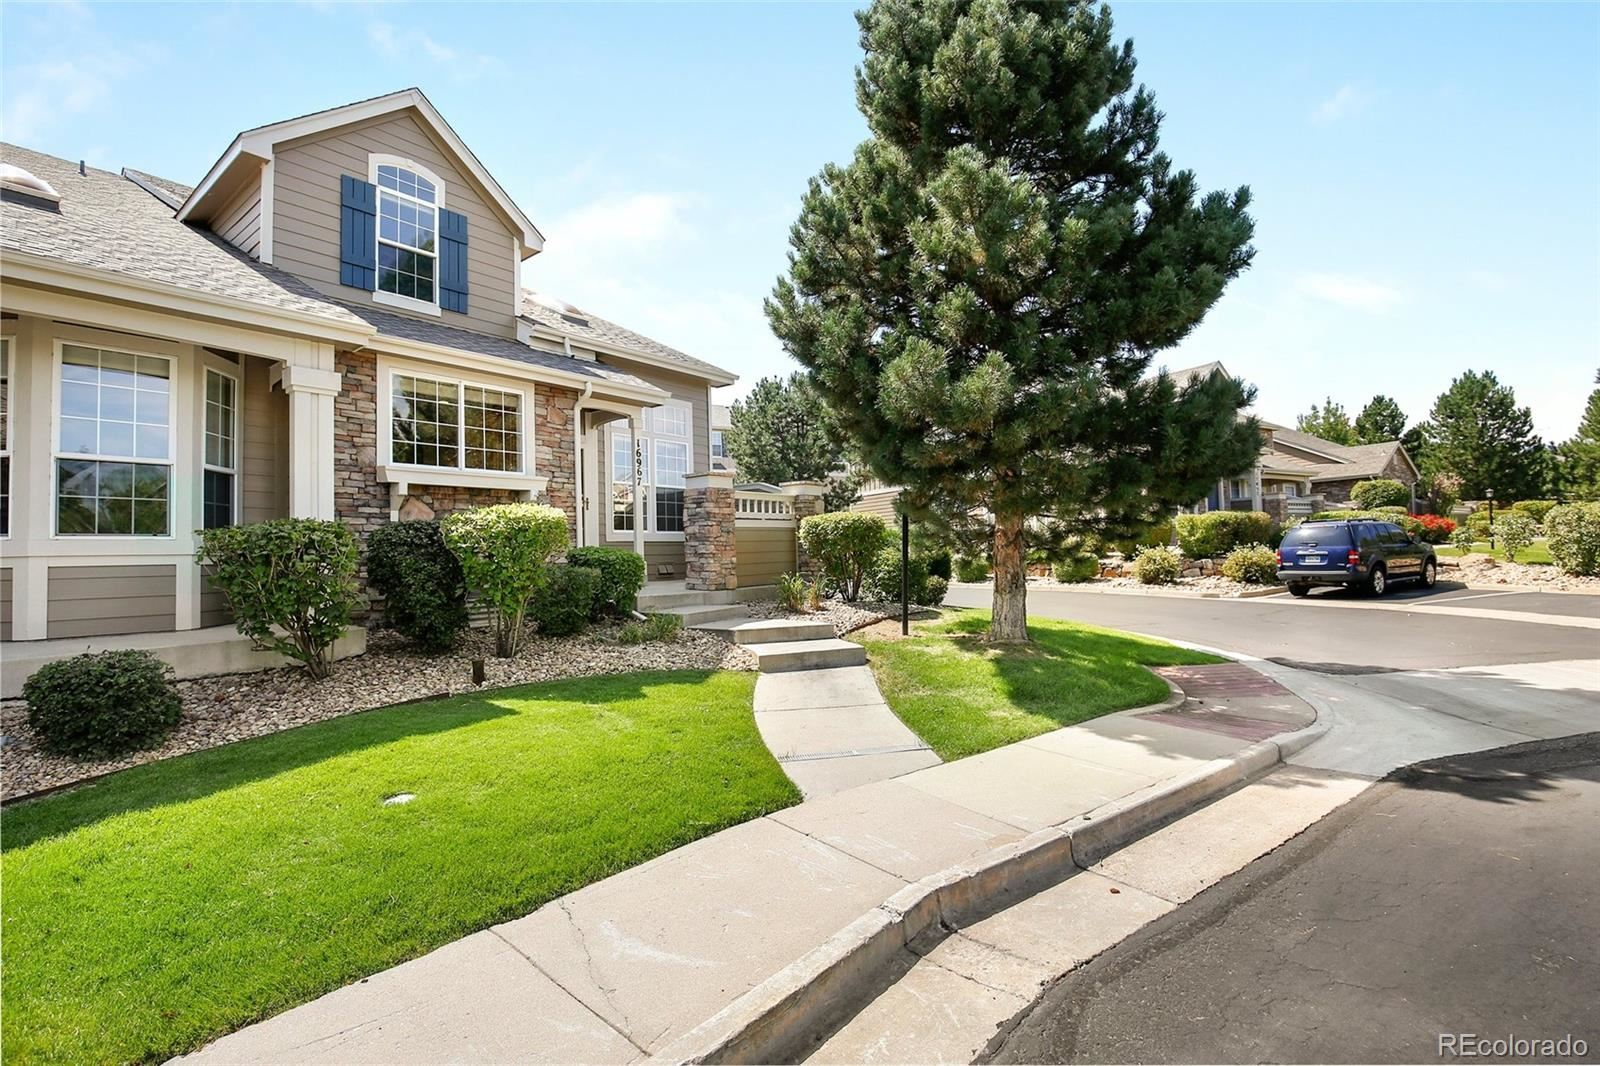 16967 W 63rd Drive, Arvada, CO 80403 - #: 3159623